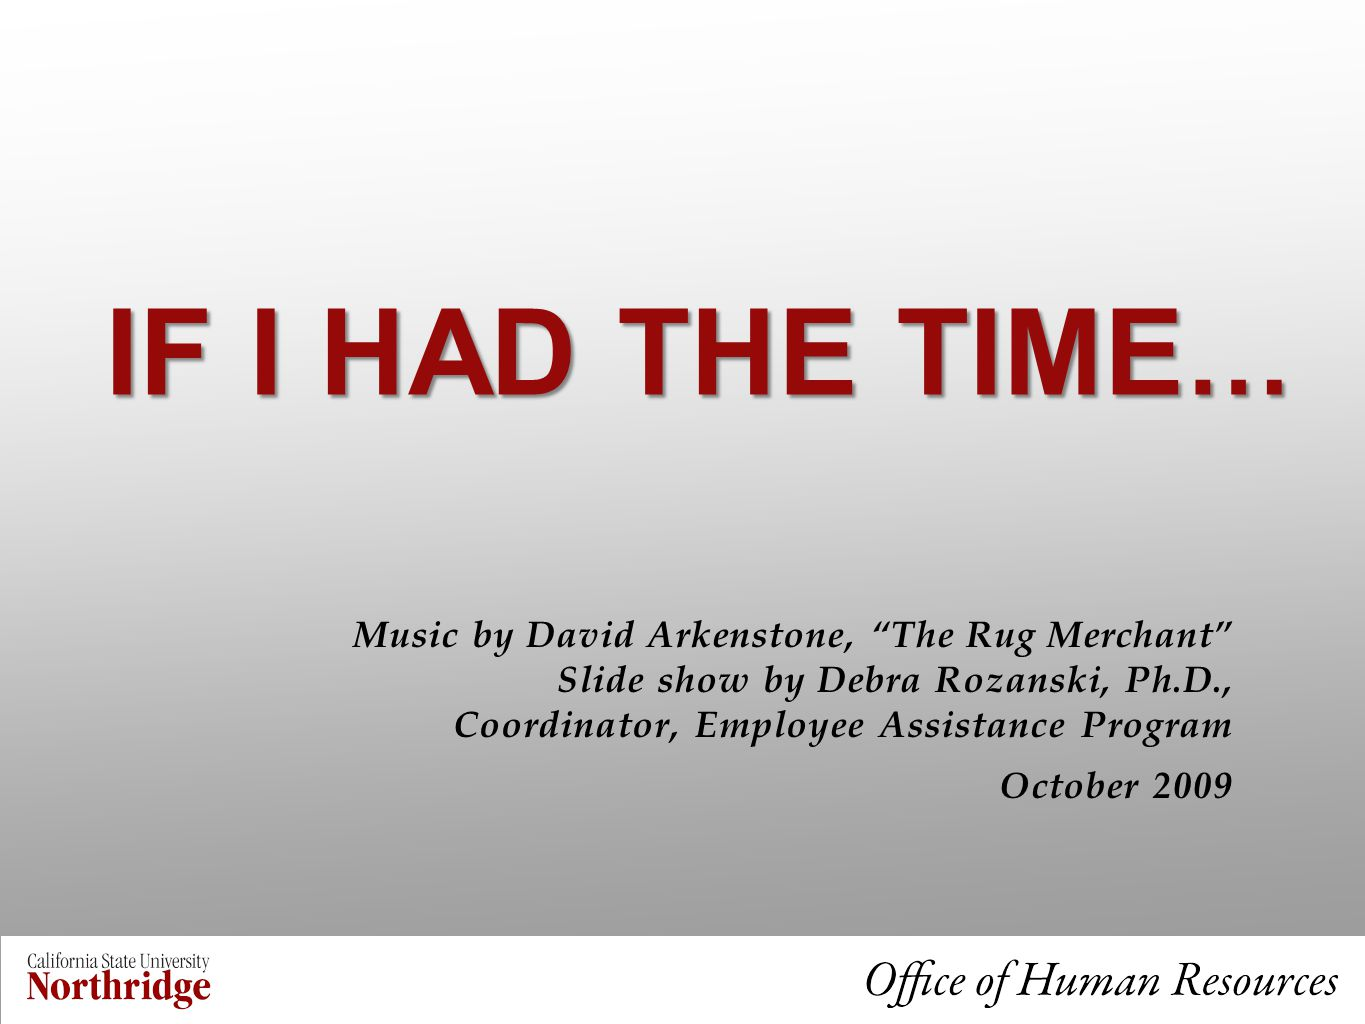 IF I HAD THE TIME … Music by David Arkenstone, The Rug Merchant Slide show by Debra Rozanski, Ph.D., Coordinator, Employee Assistance Program October 2009